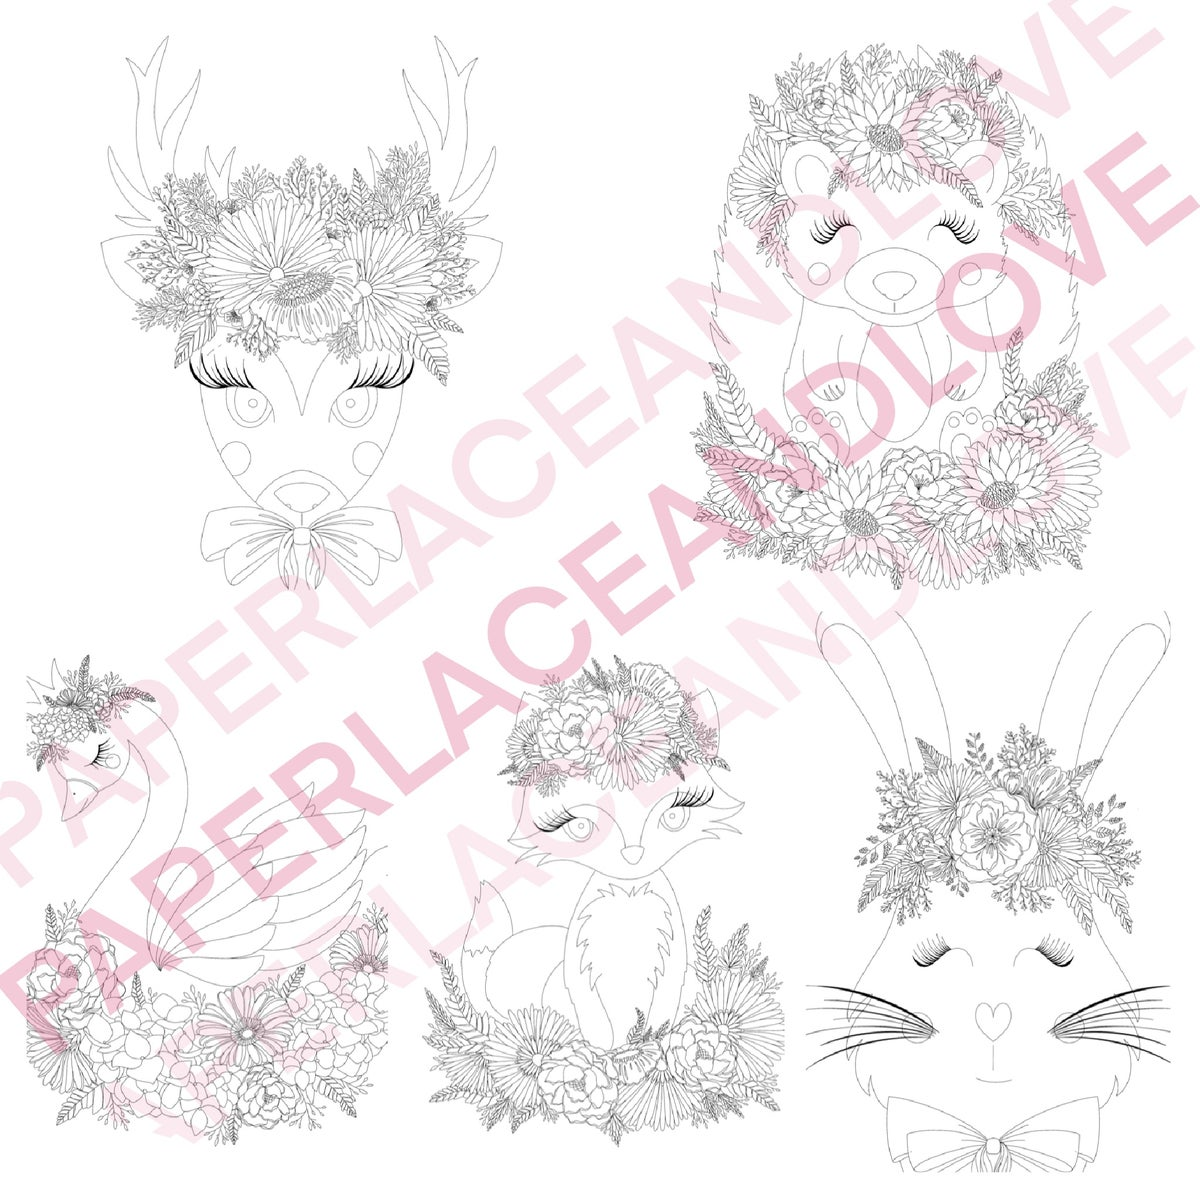 Image of Flower Friends Colouring Pages set of 5